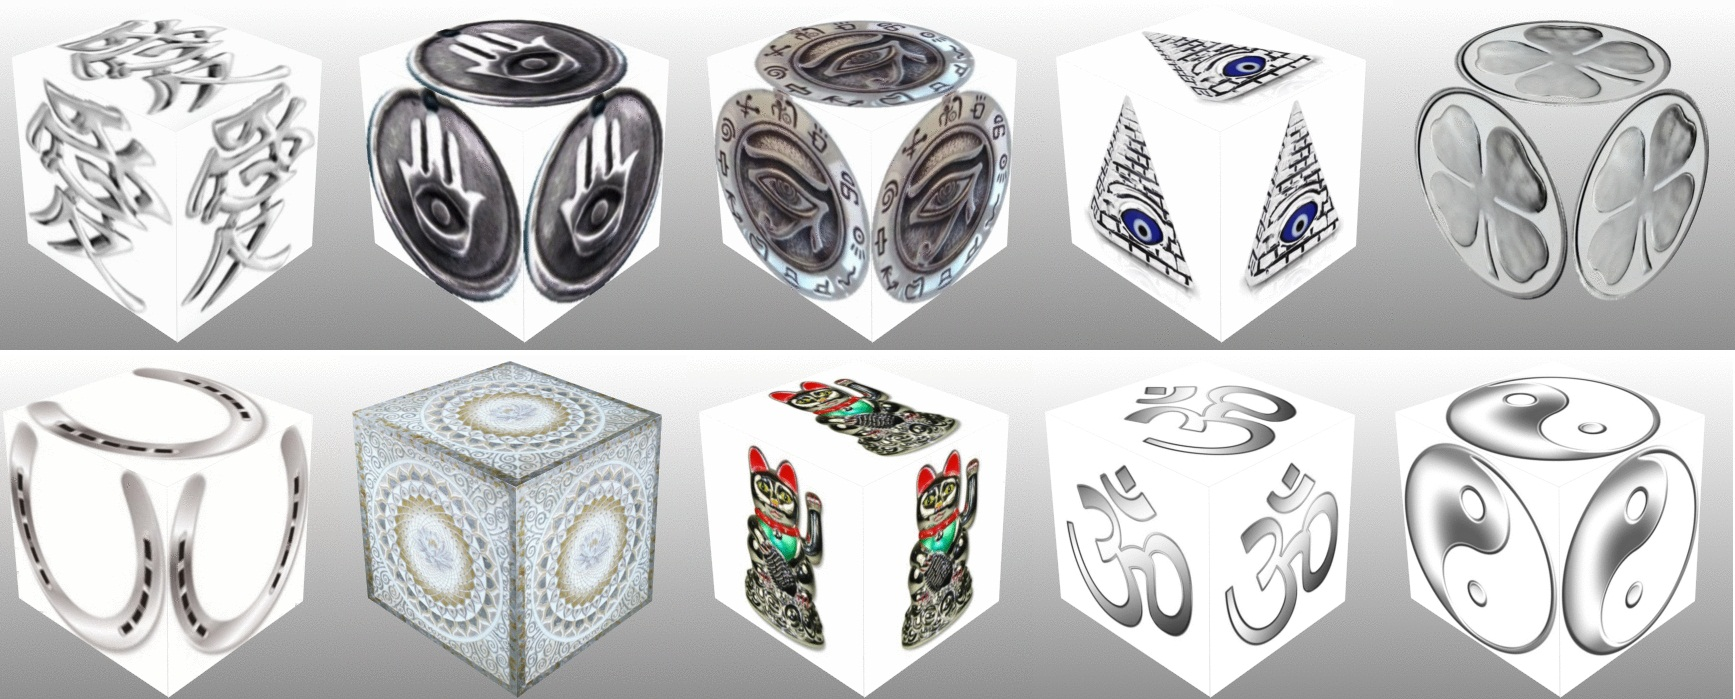 cube, 3d cube, lucky dice, luck symbols, Silver Eye of Fatima, Silver Eye of Providence, Silver Four Leaf Clover, Silver Horseshoe, Silver Maneki Neko, Silver Om, Silver Ying Yang, collage